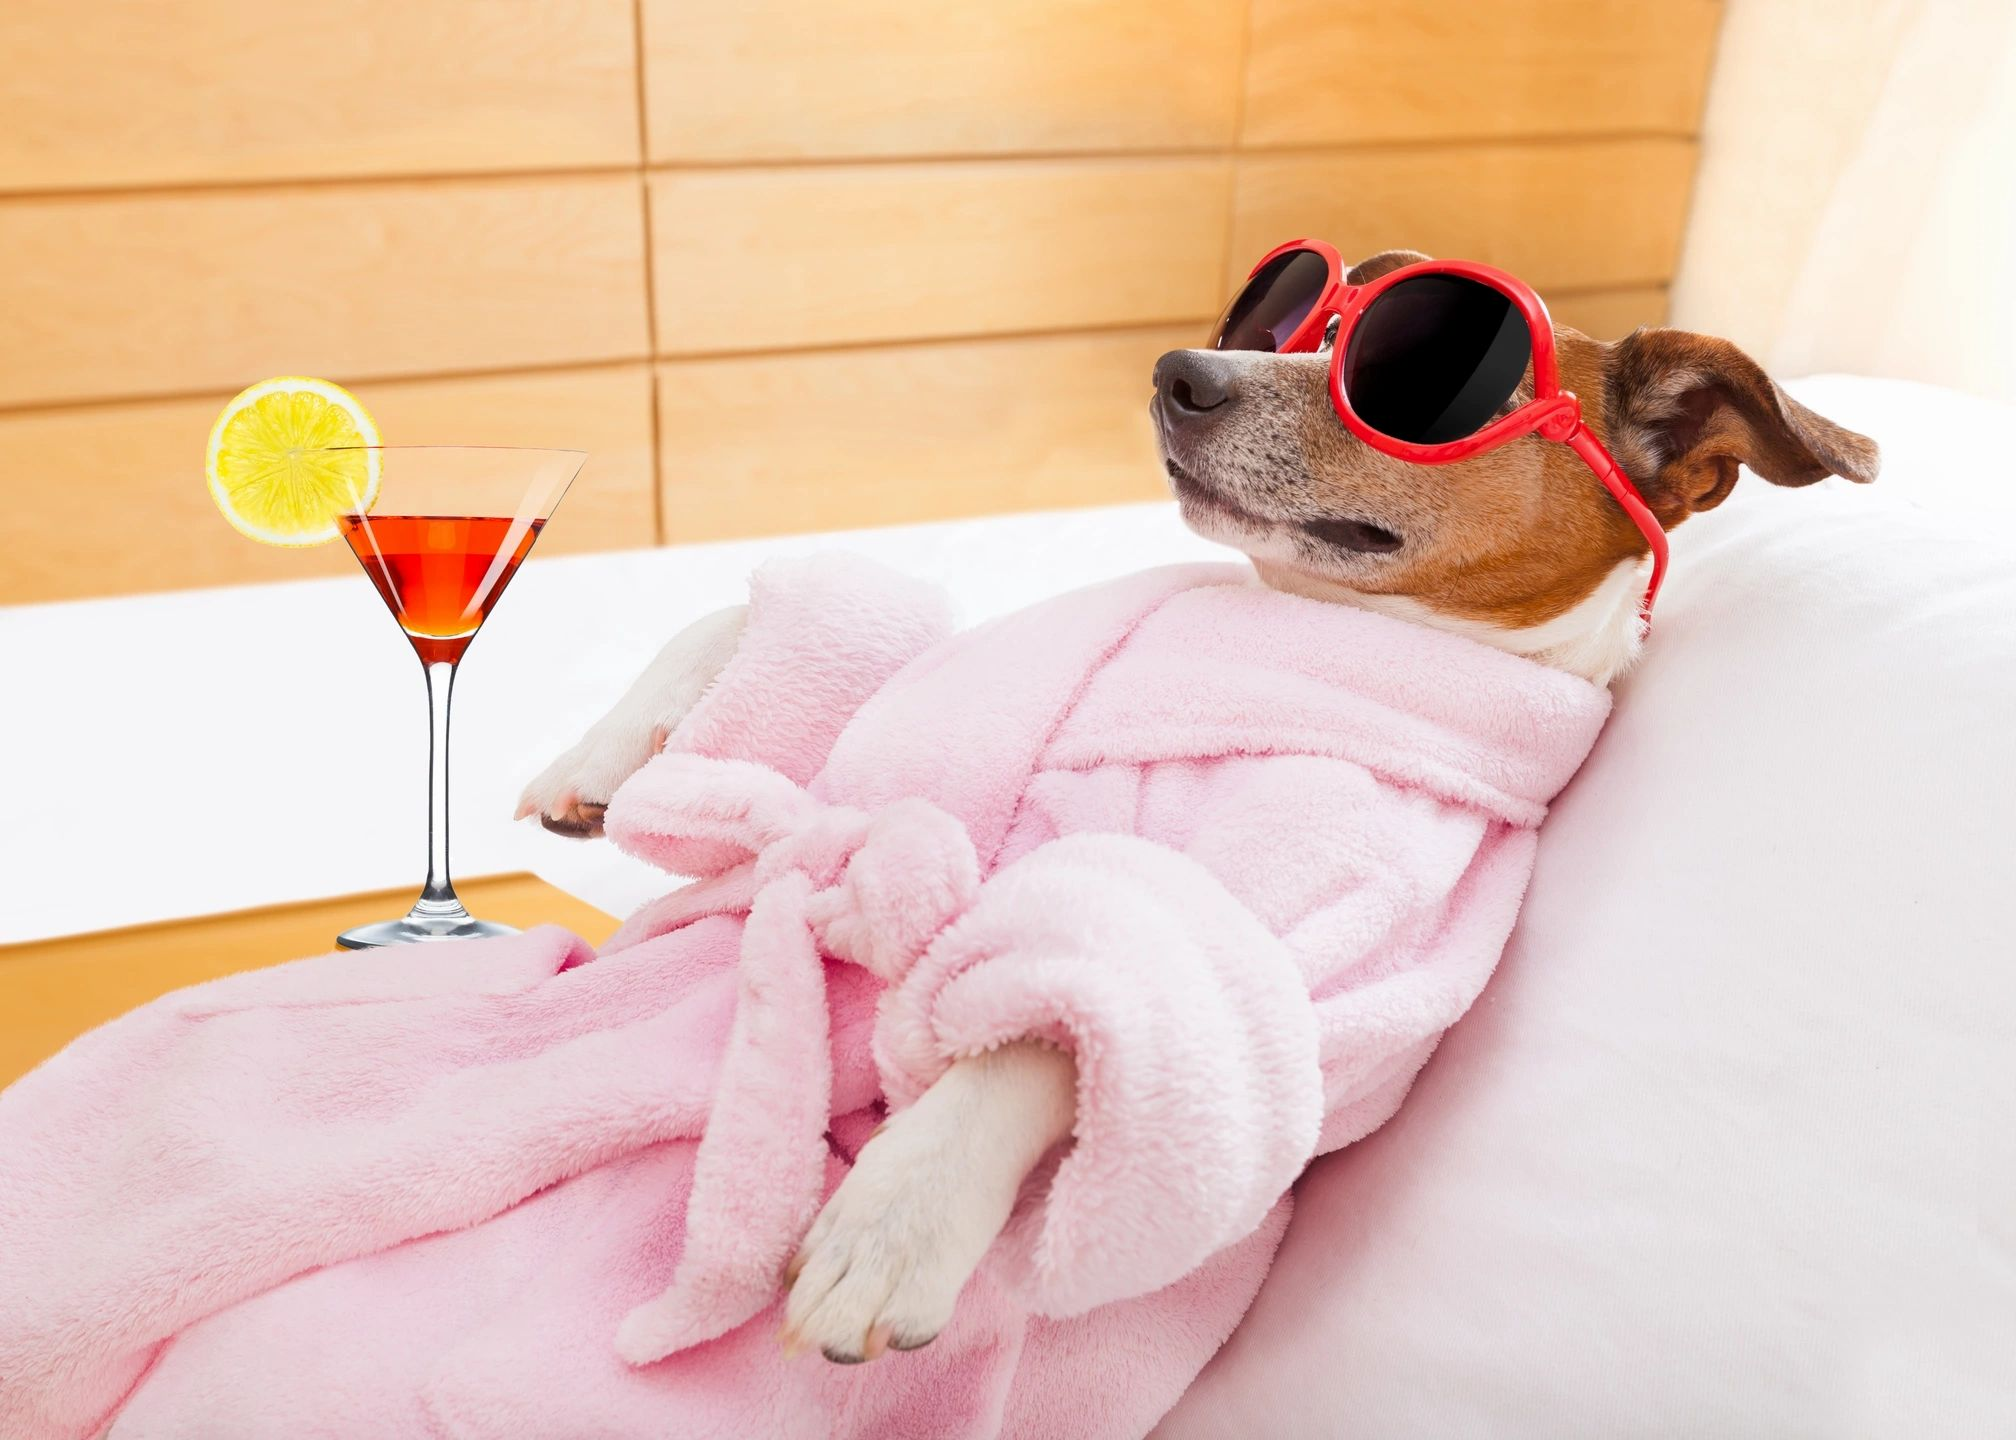 dog with sunglasses and a robe